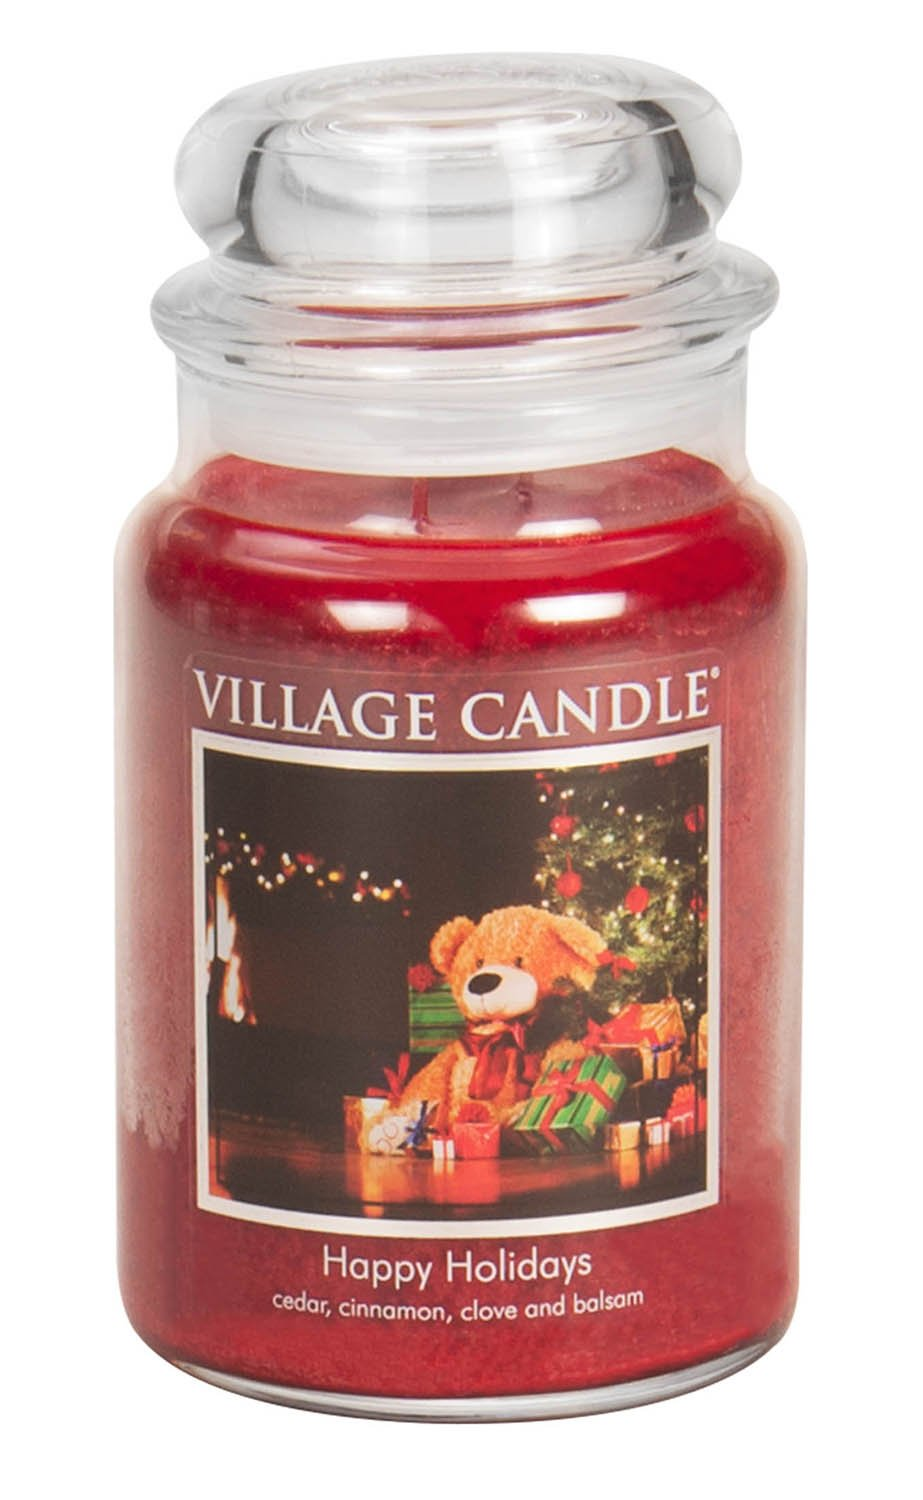 Village Candle Happy Holidays 11 oz Glass Jar Scented Candle Small